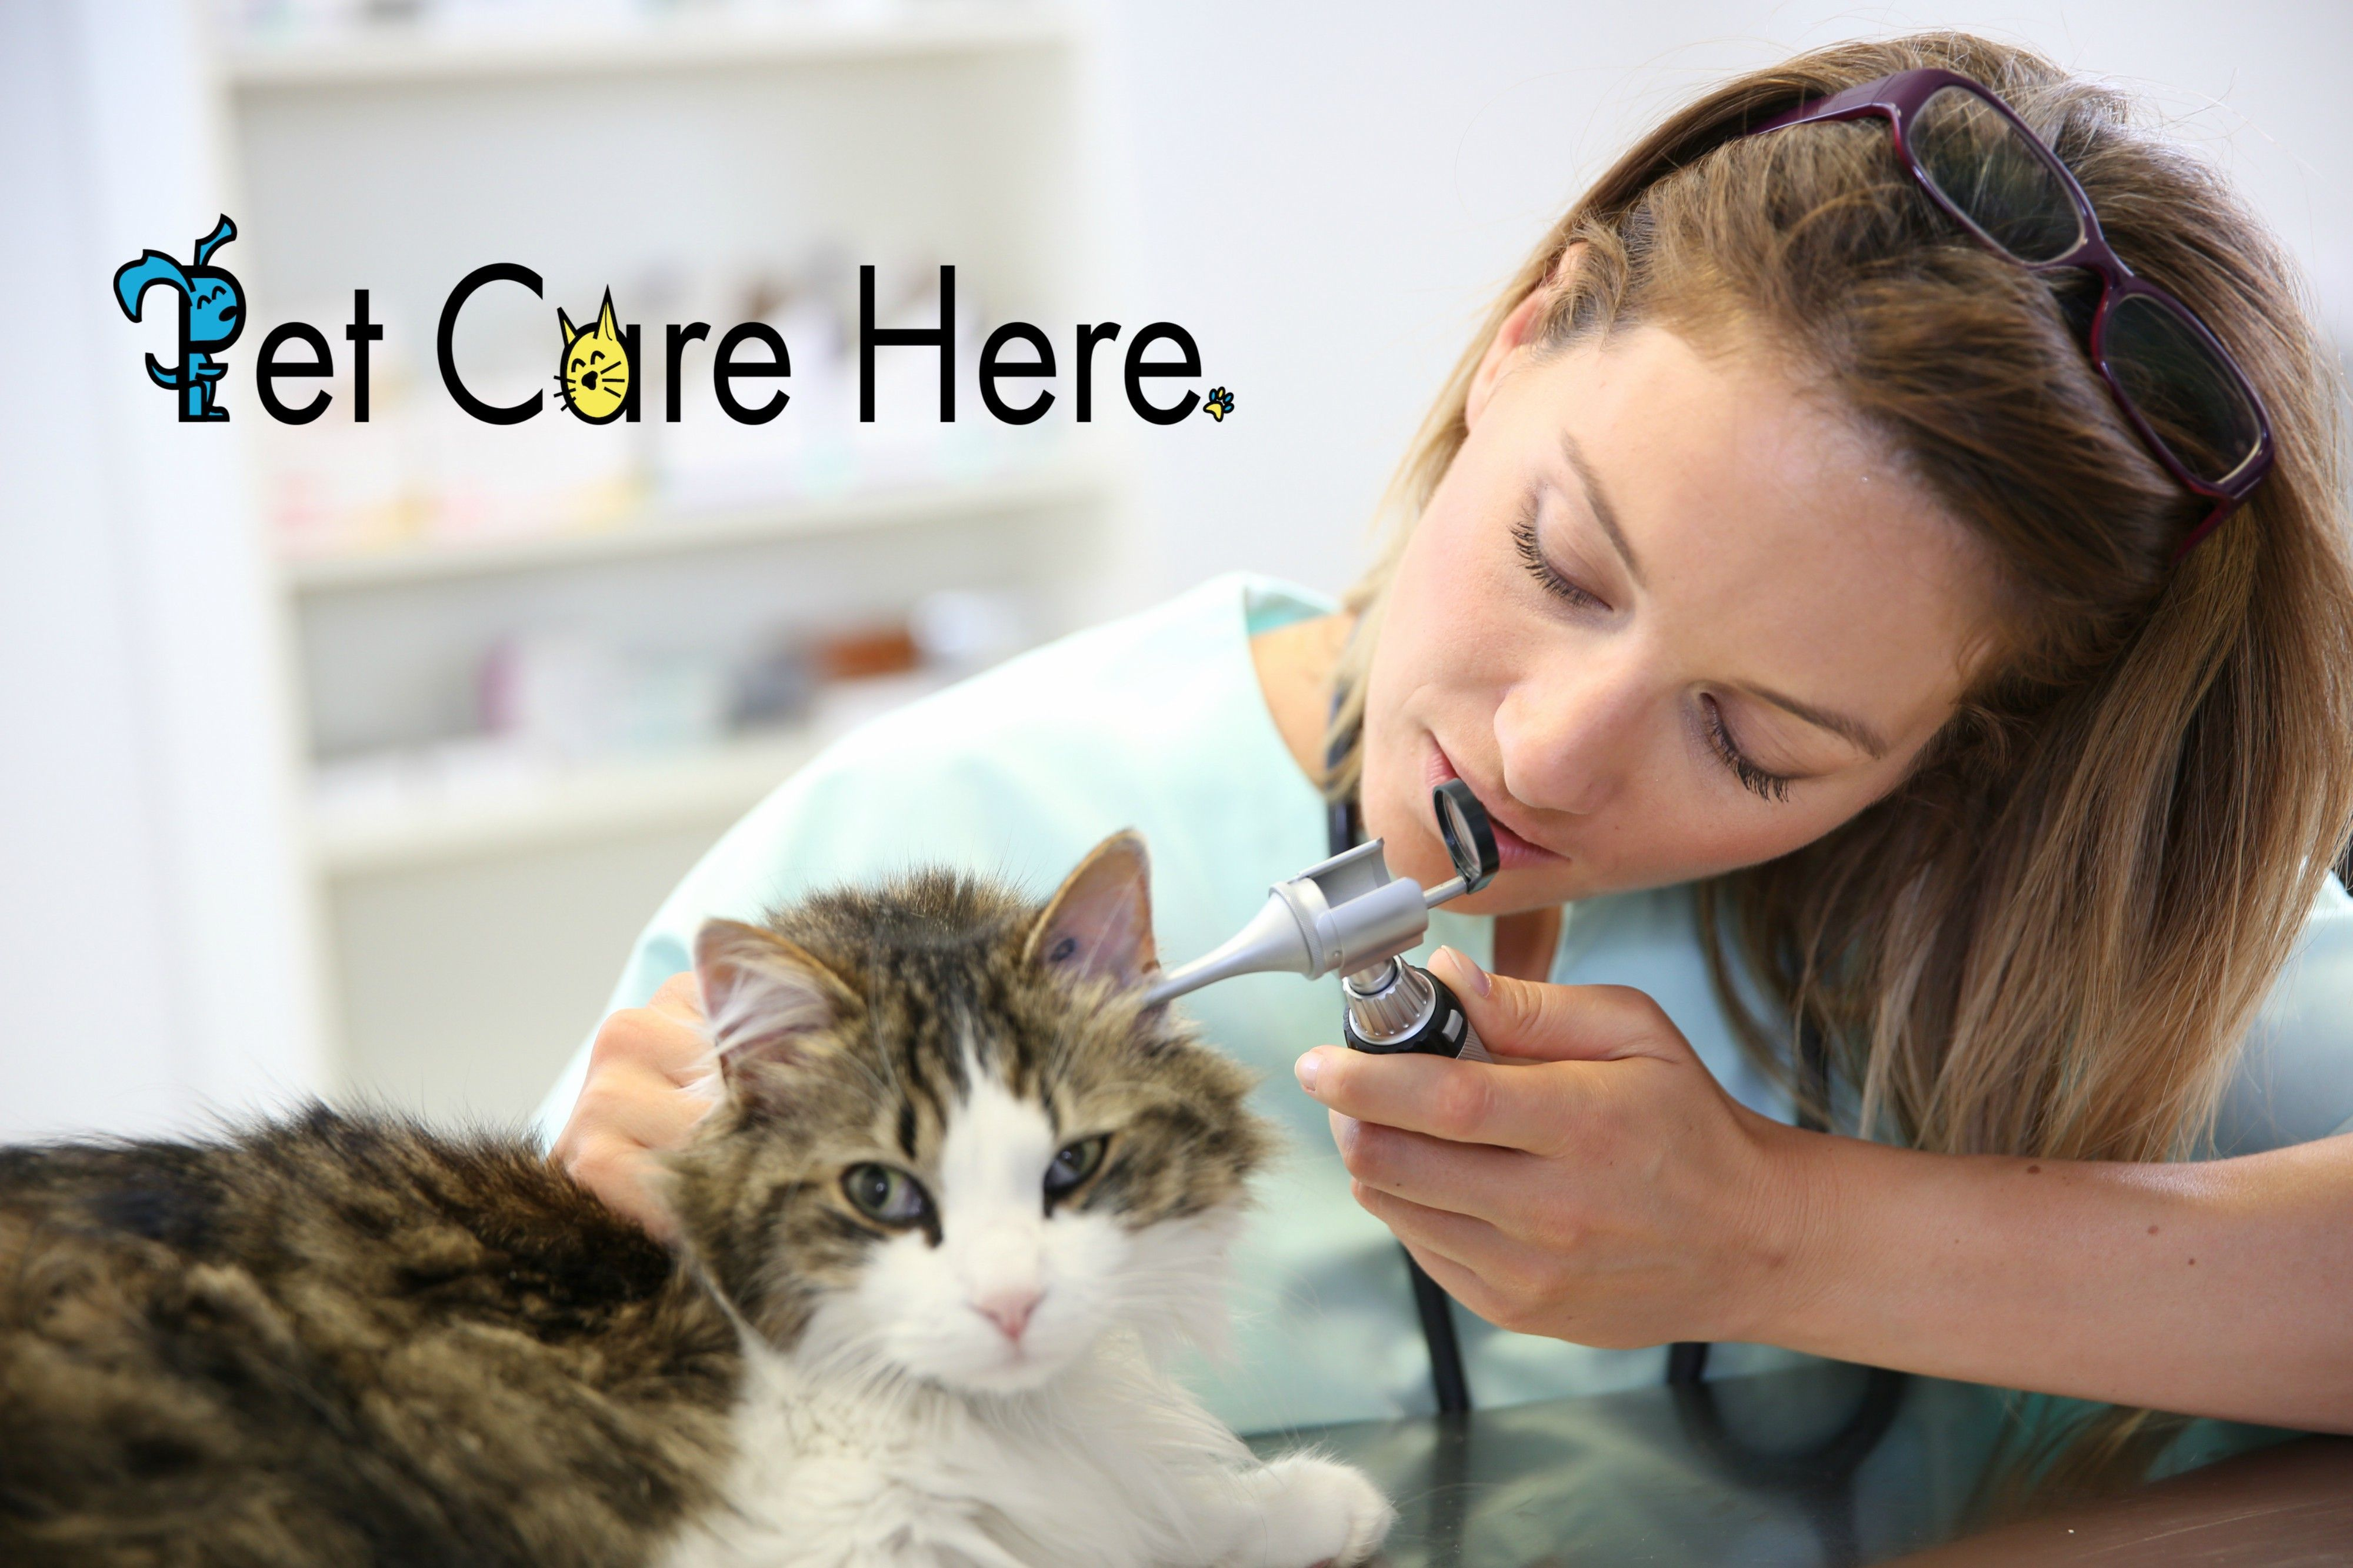 Compassion Fatigue Veterinarians Hurt that is Never